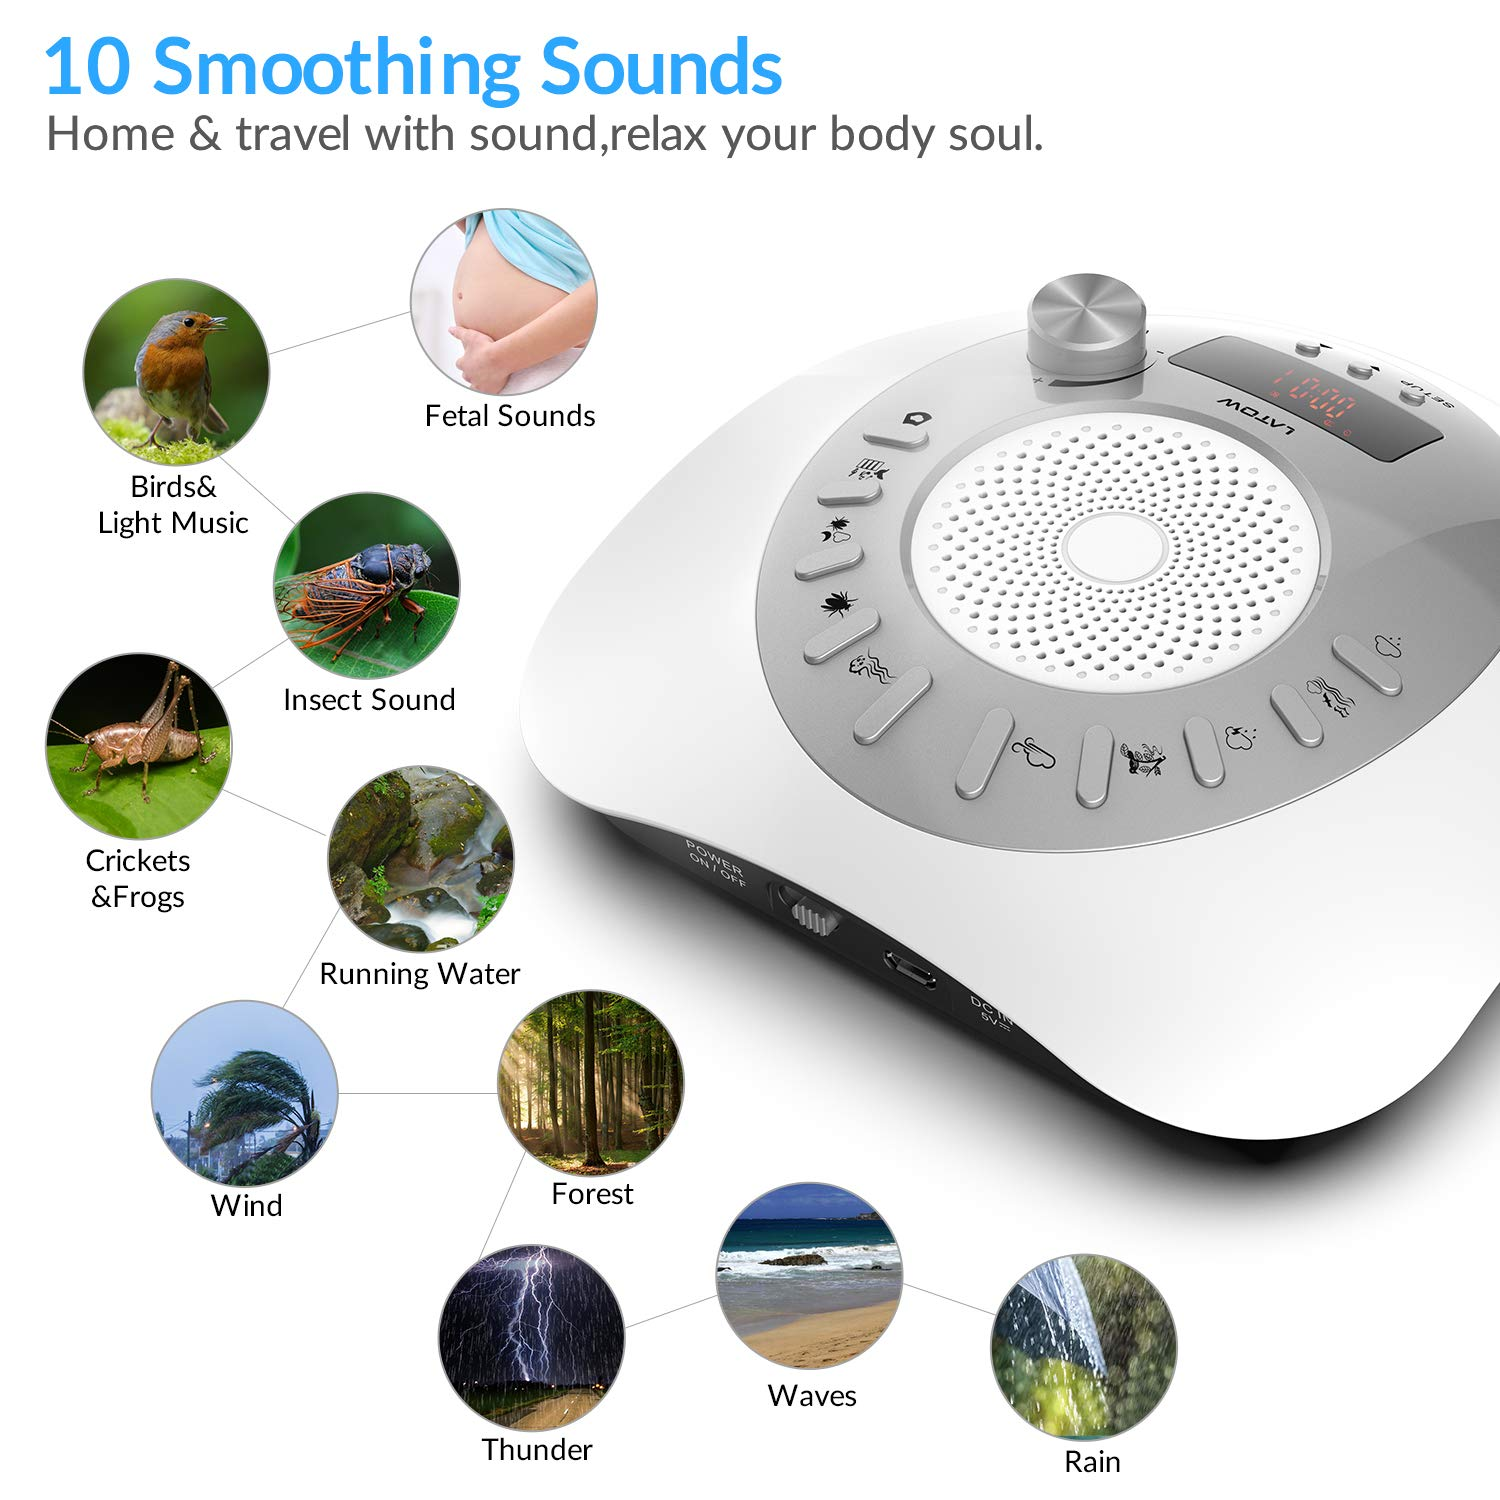 Amazon.com: White Noise Machine, LATOW Womb Sound White Noise Machine for Baby Sleeping, Portable Sleep Therapy 10 Non-Looping Sounds for Baby Home Office ...